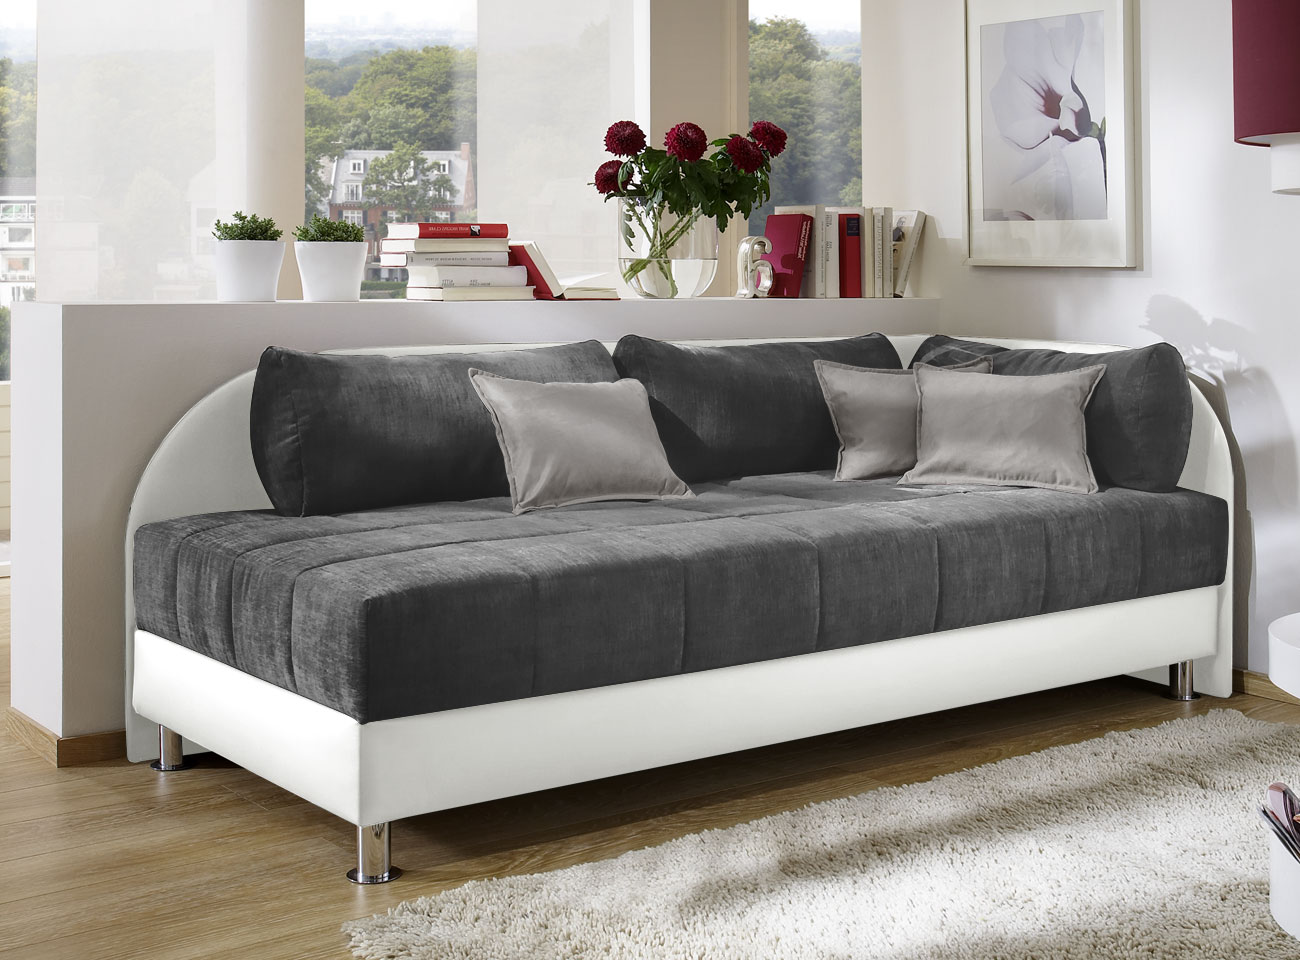 schlafsofa mit bettkasten wei. Black Bedroom Furniture Sets. Home Design Ideas